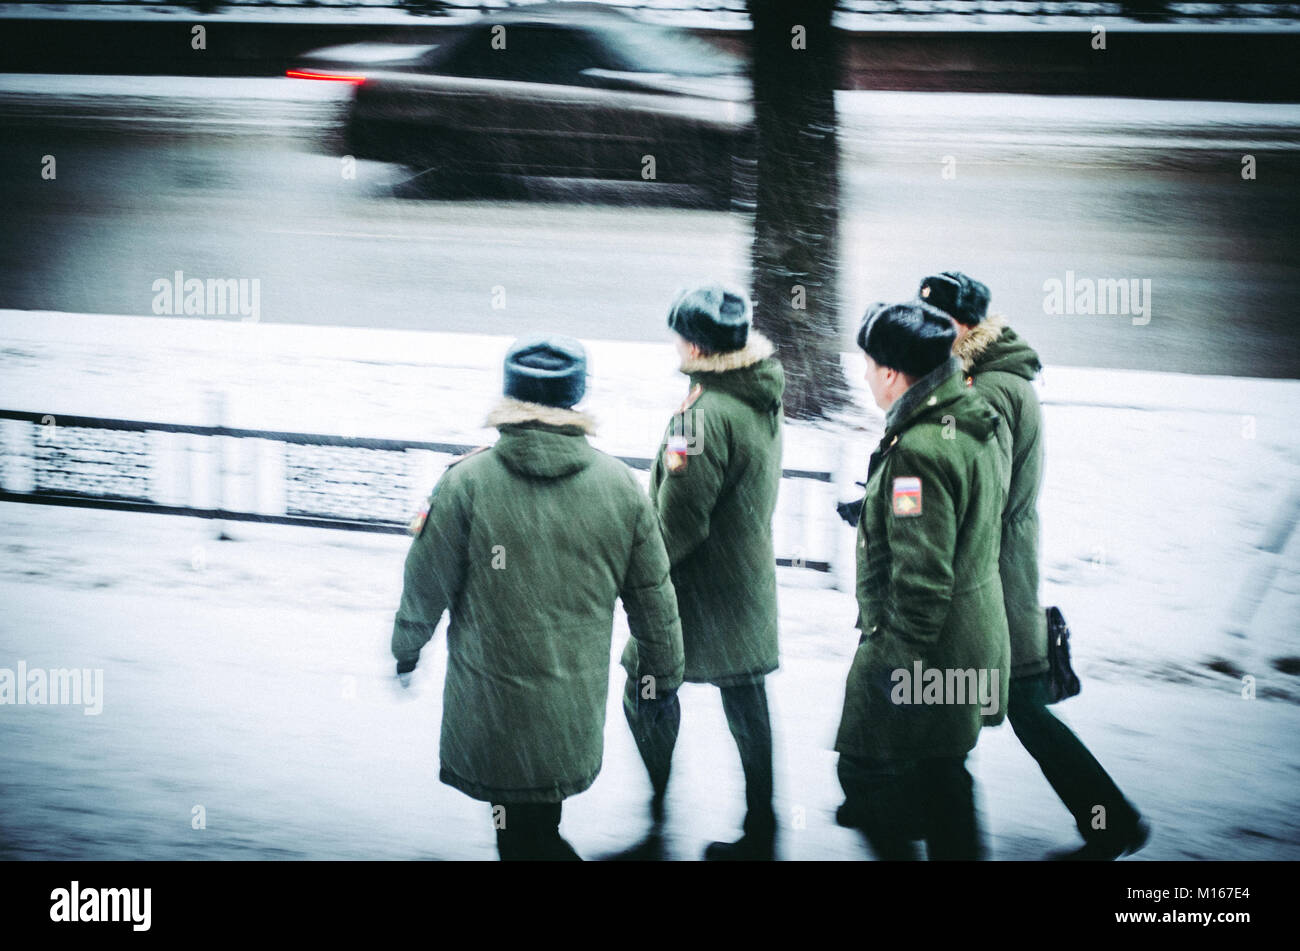 Russian Police in Yekaterinburg, Russia Stock Photo